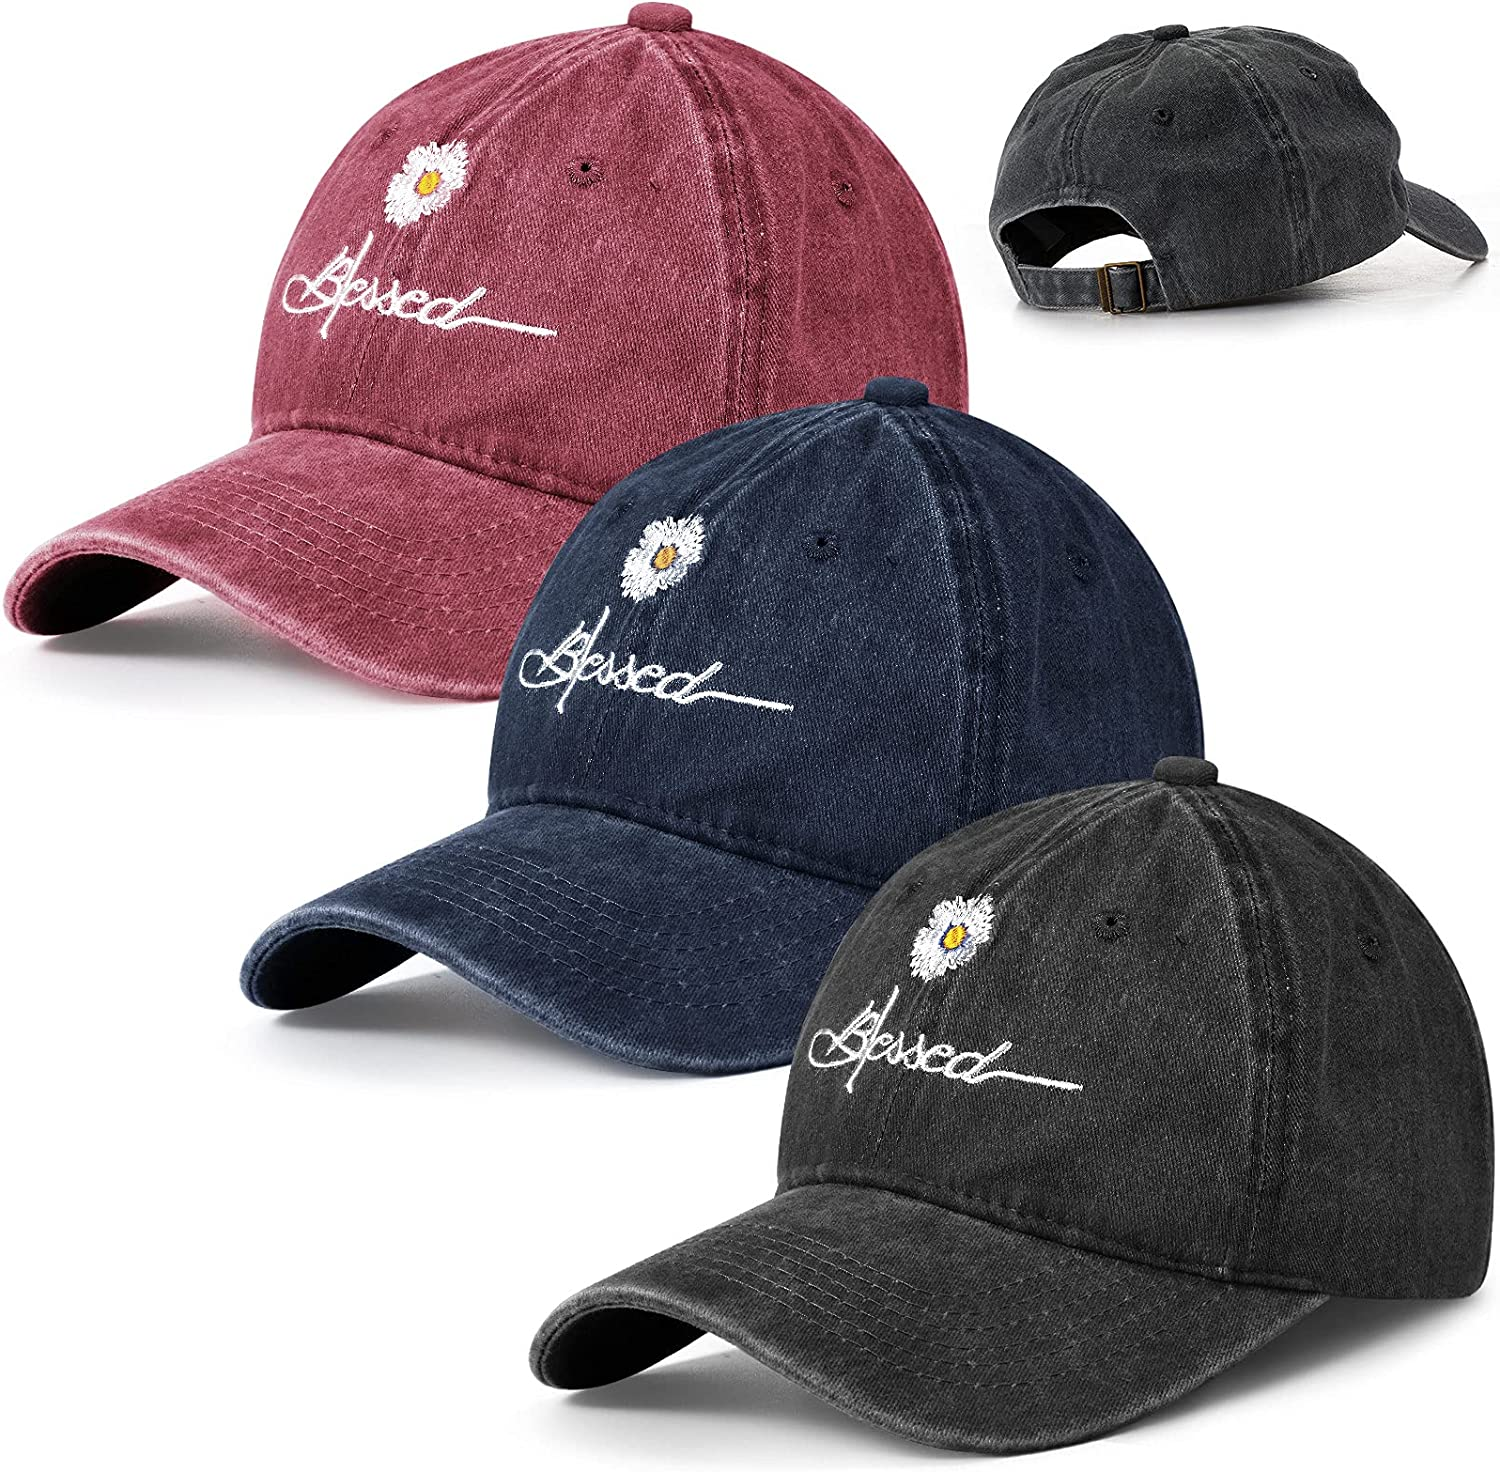 3 Pieces Adjustable Distressed Blessed Hat Daisy Blessed Embroidered Baseball Cap Washed Vintage Dad Hat Sun Hat Fishing Hat for Men and Women